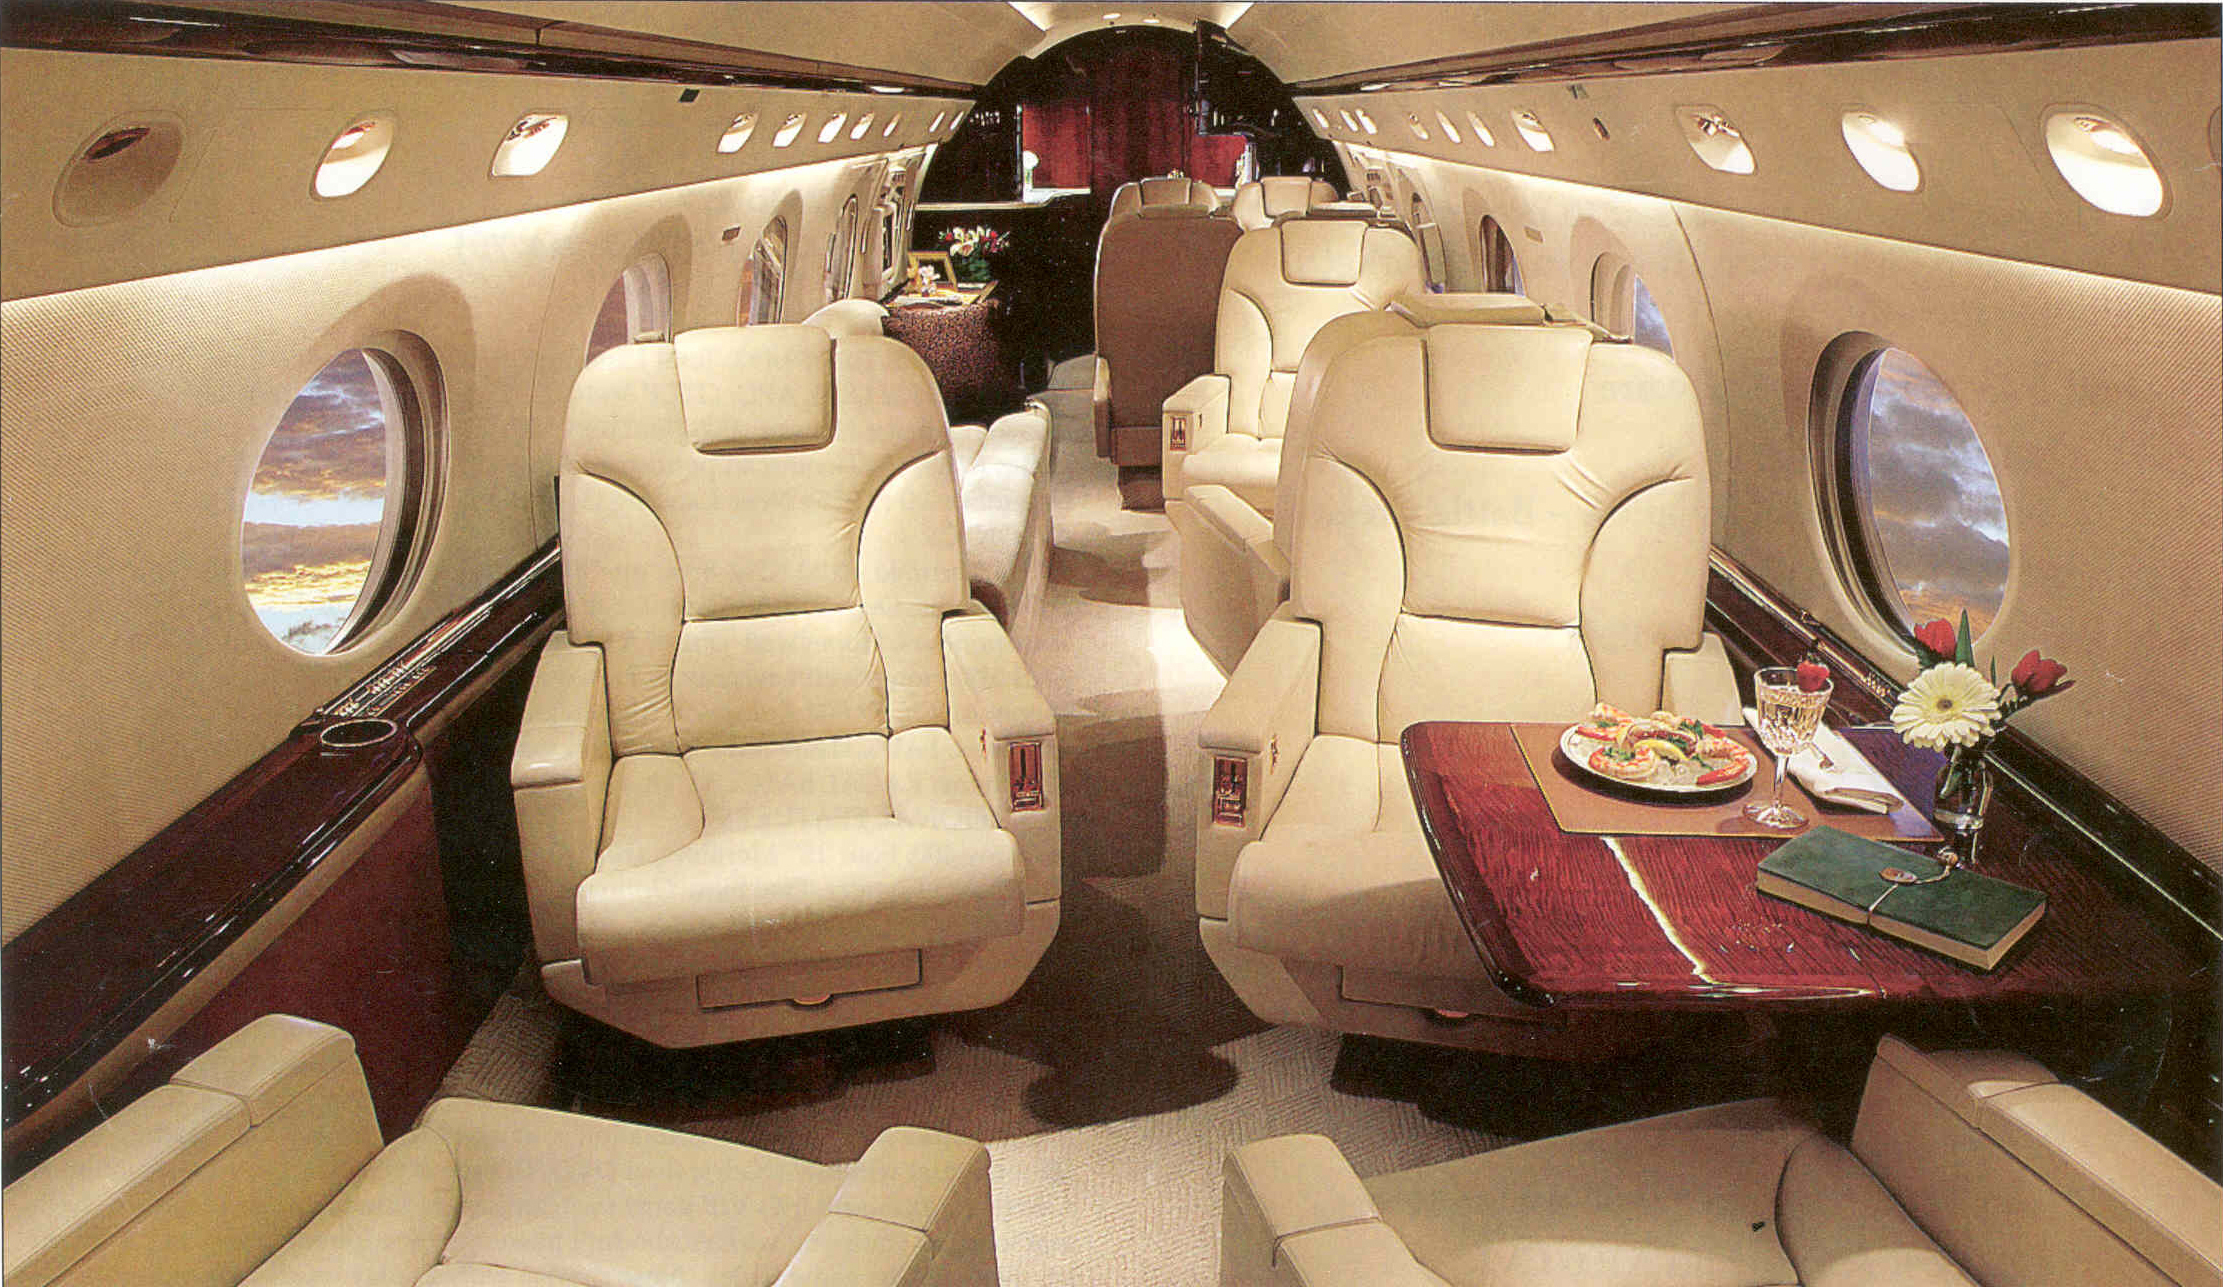 GulfstreamCharterJetInterior First Class? Ill pass